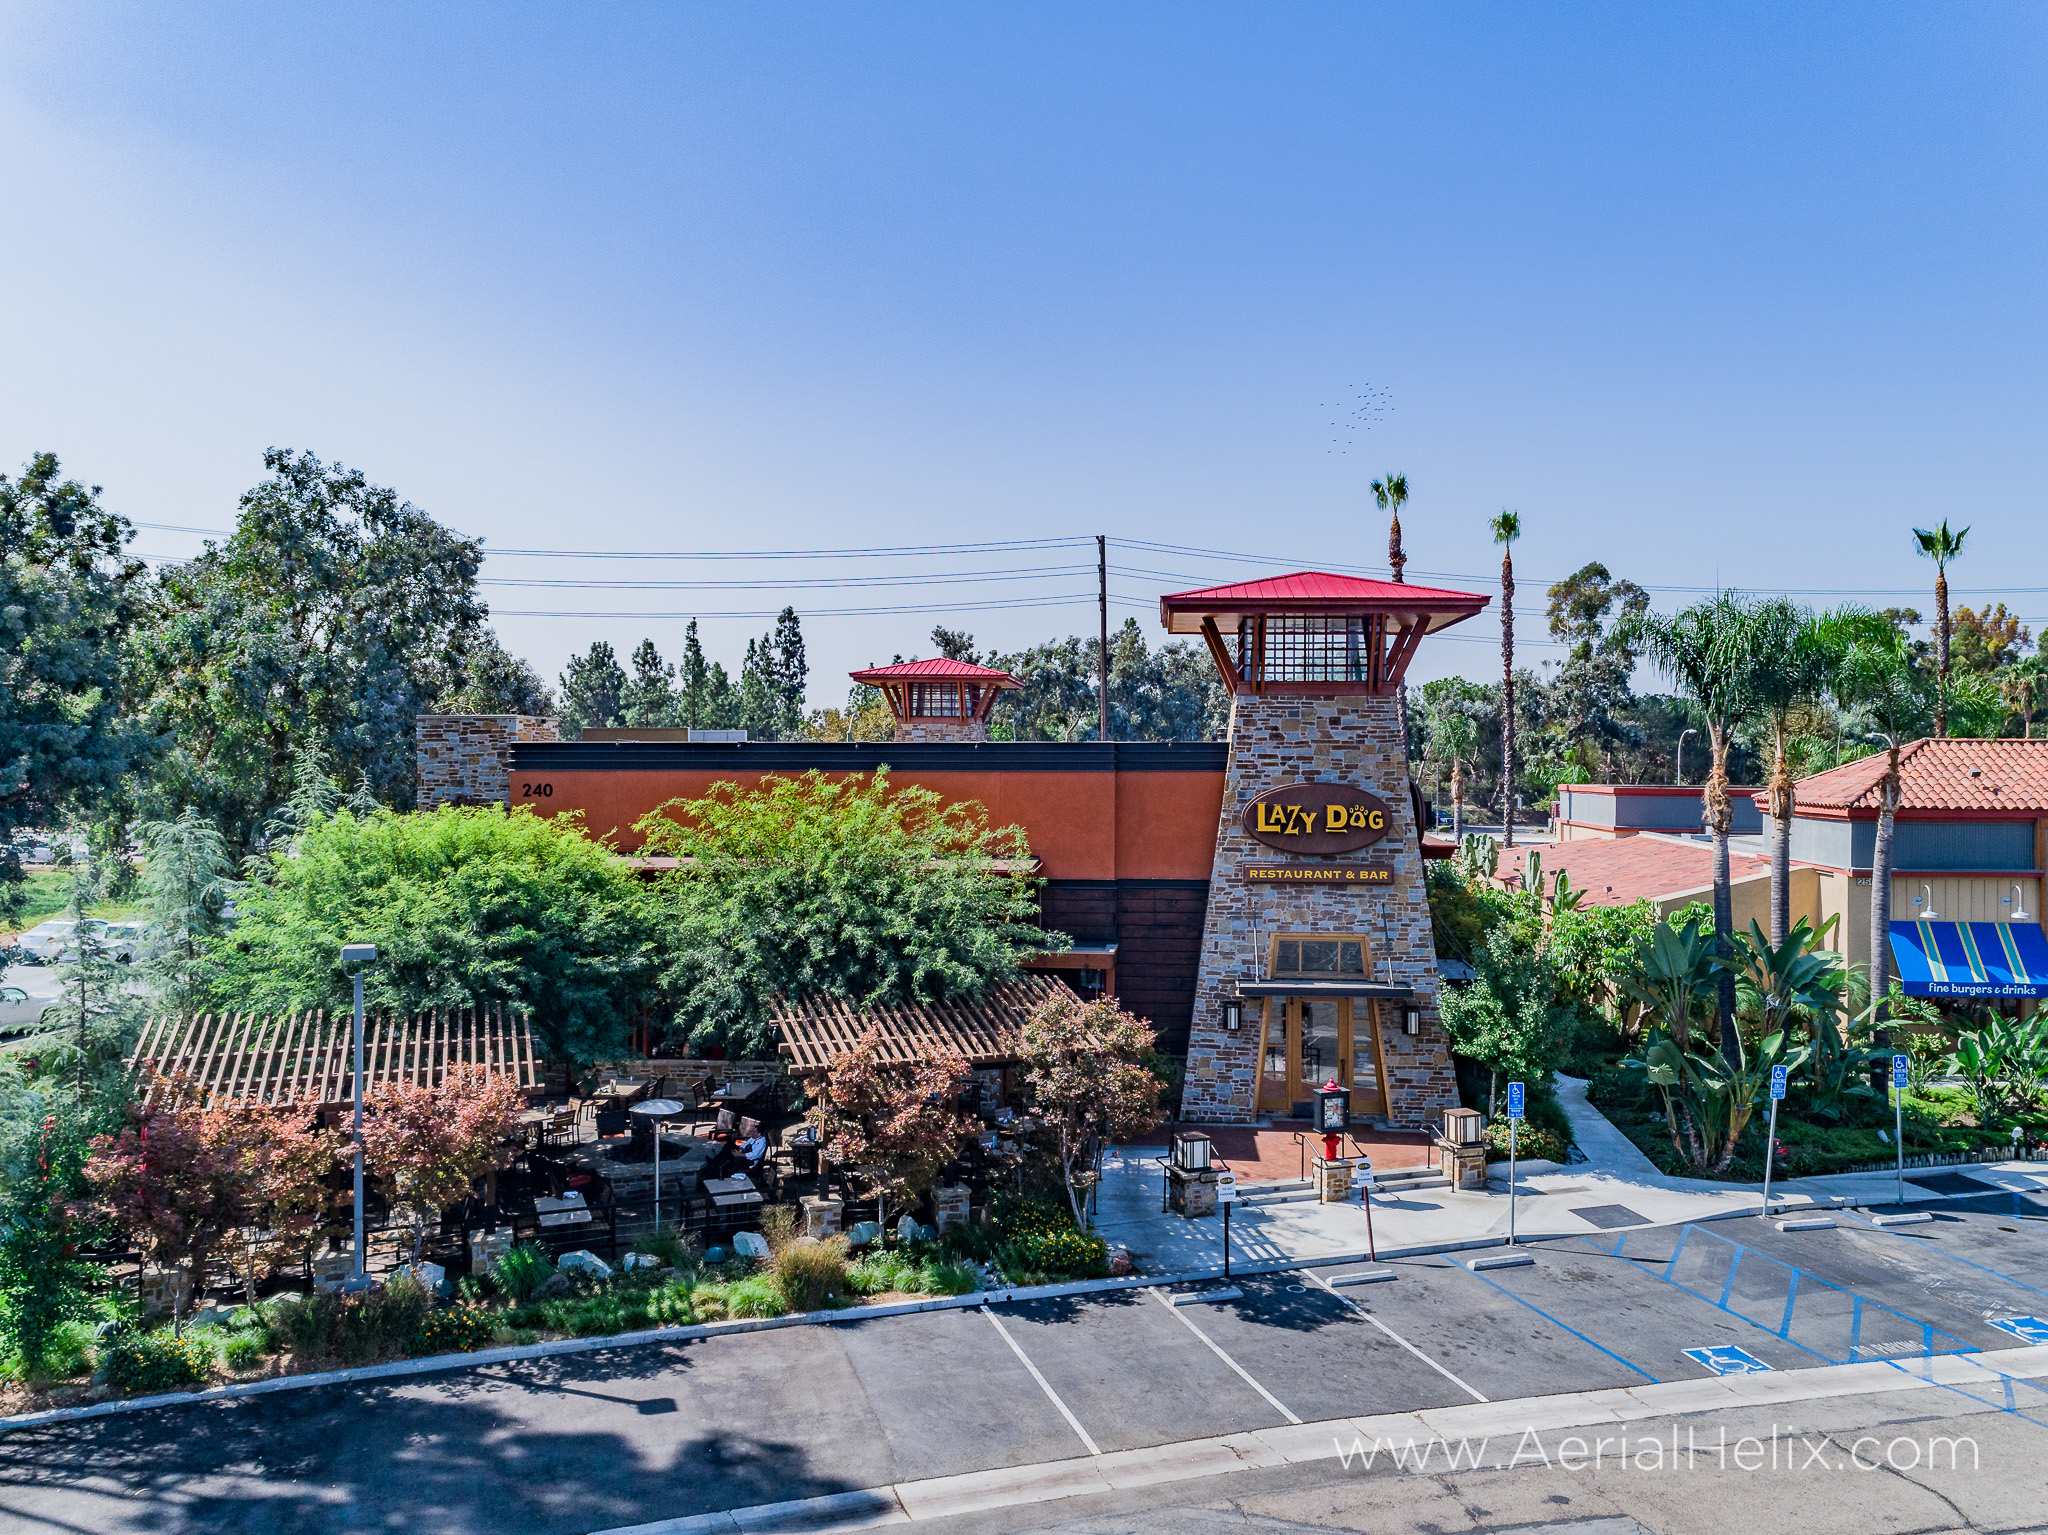 Lazy Dog Cafe - HELIX Commercial Real Estate Aerial Photographer-1.jpg